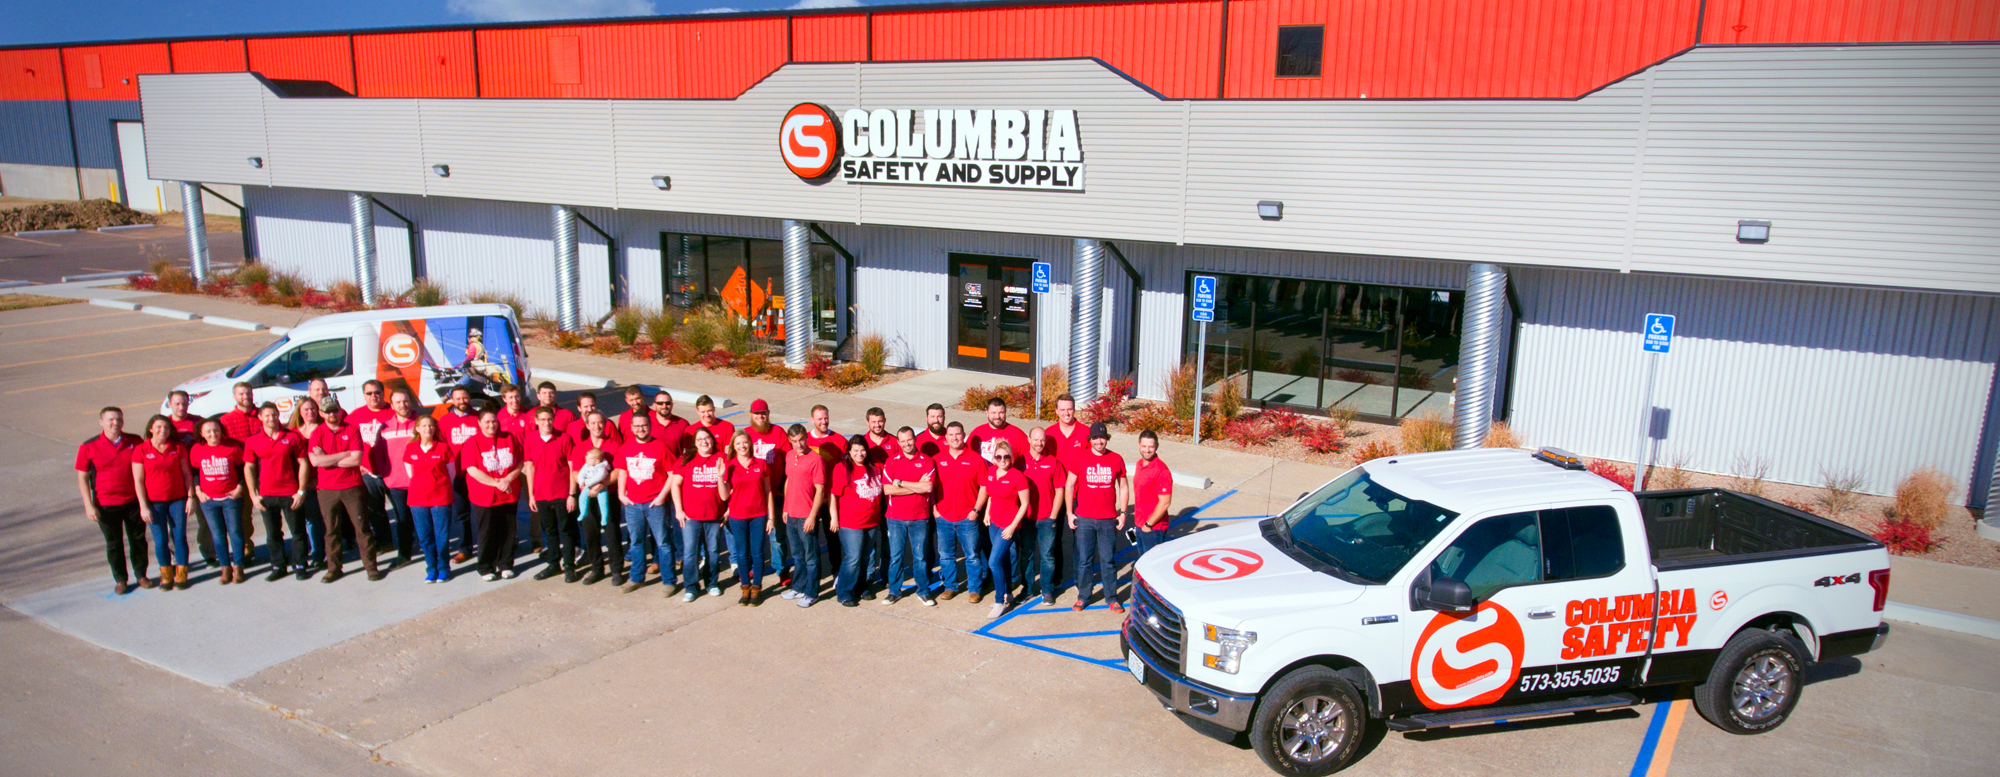 A picture of the Columbia Safety and Supply team at our corporate headquarters in Columbia, MO